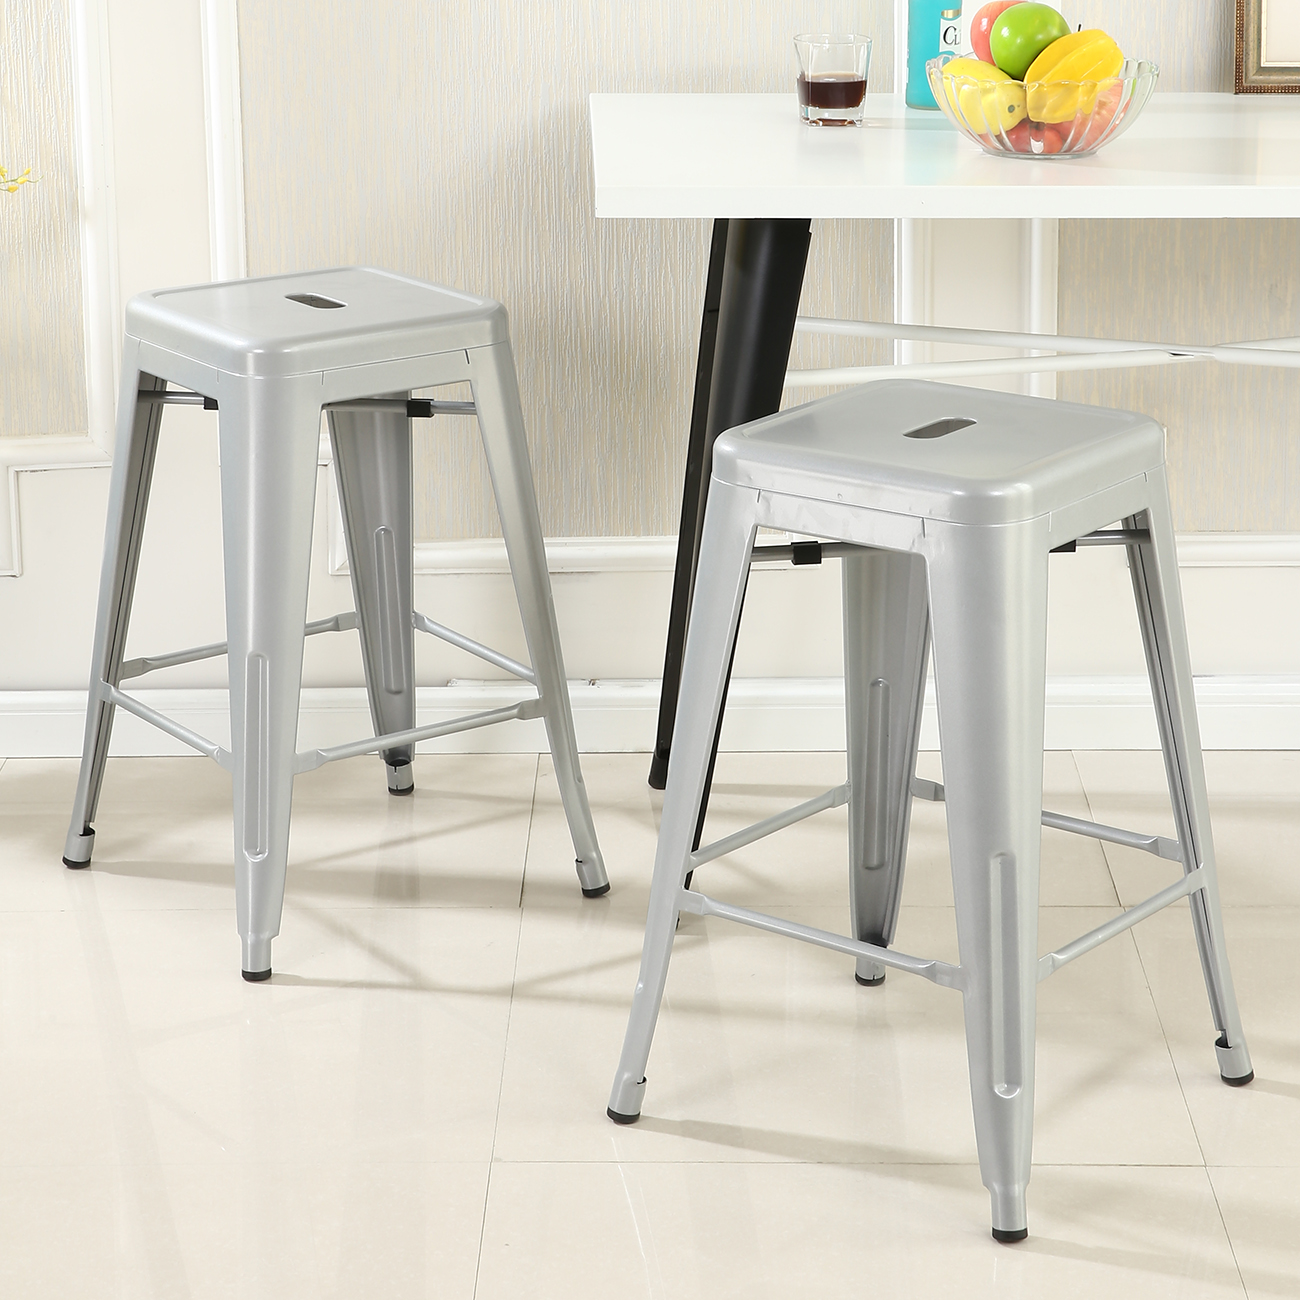 Metal Counter Height Chairs Set Of 2 Metal Bar Stool Counter Height Home 24 Quot 26 Quot 30